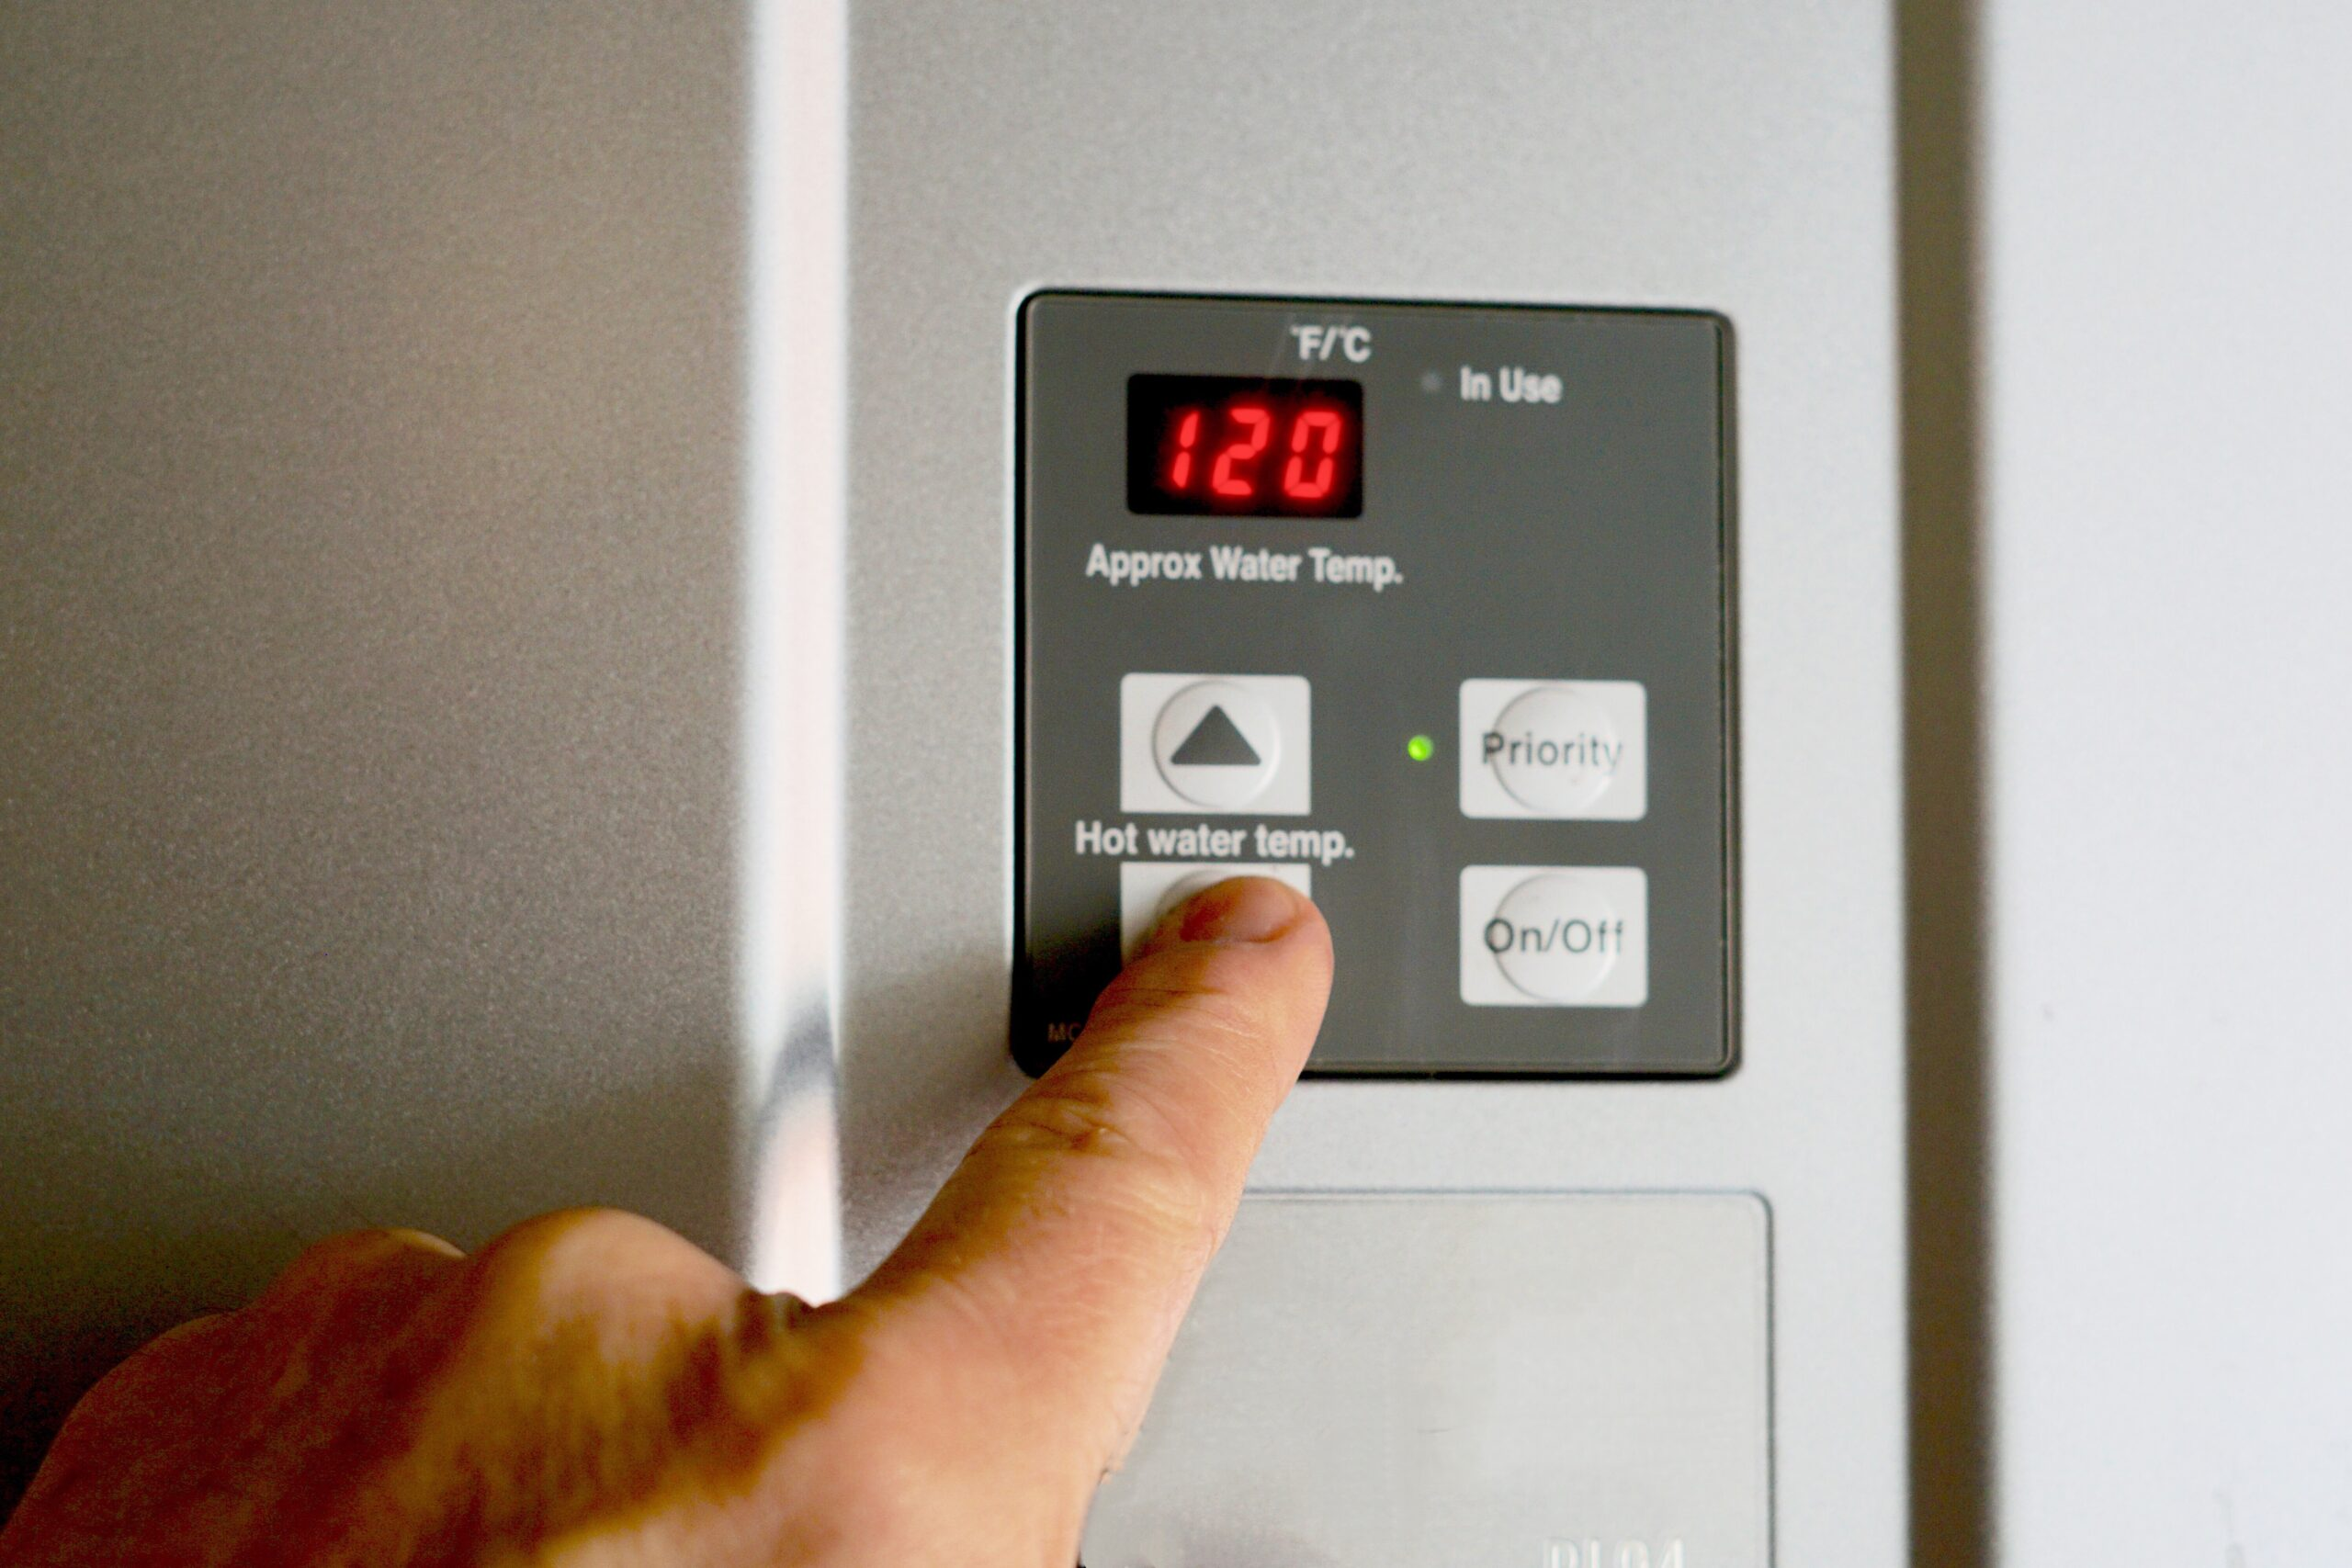 finger-on-hot-water-heater-control-unit-FKNWETA